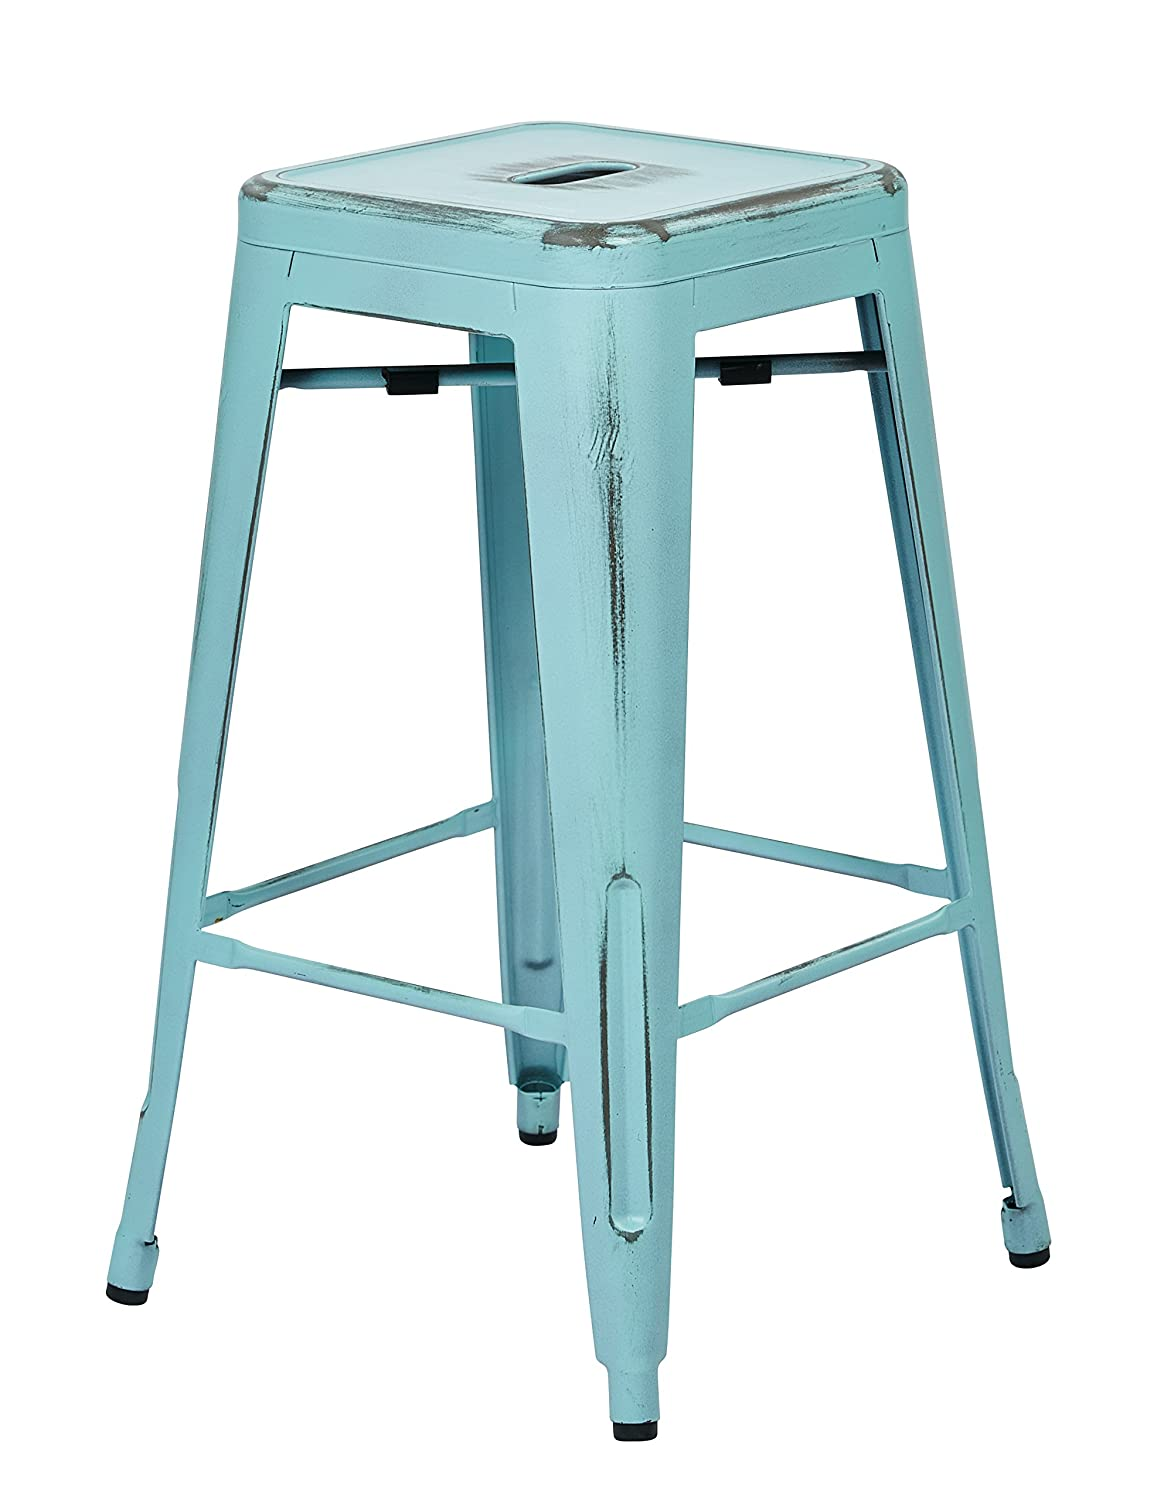 Amazon.com Office Star Bristow Antique Metal Barstool 26-Inch Antique Sky Blue 4-Pack Kitchen u0026 Dining  sc 1 st  Amazon.com : vintage metal bar stools - islam-shia.org